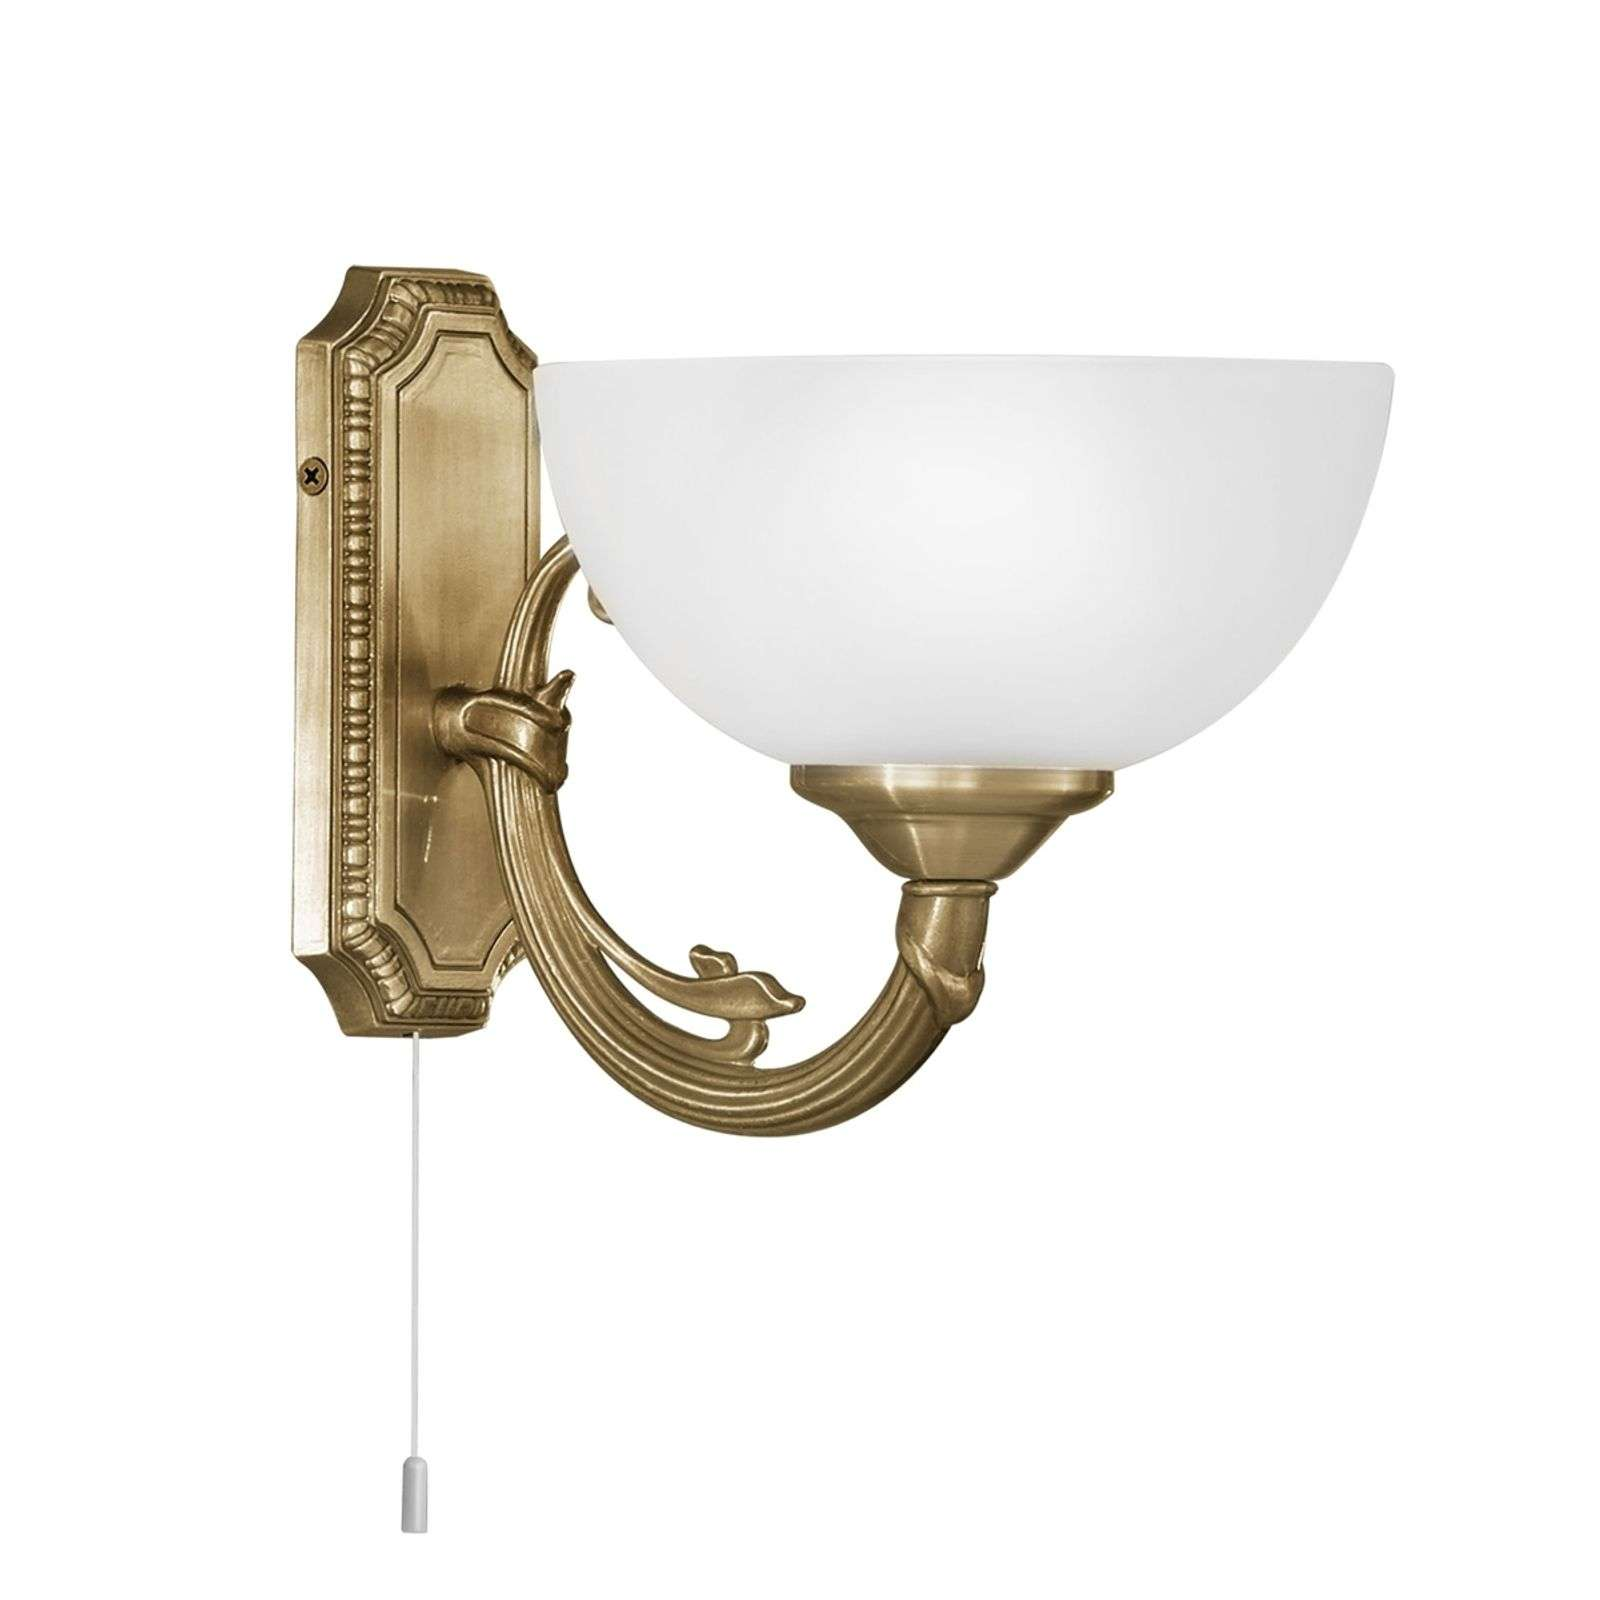 Belle applique SAVY, 1 lampe